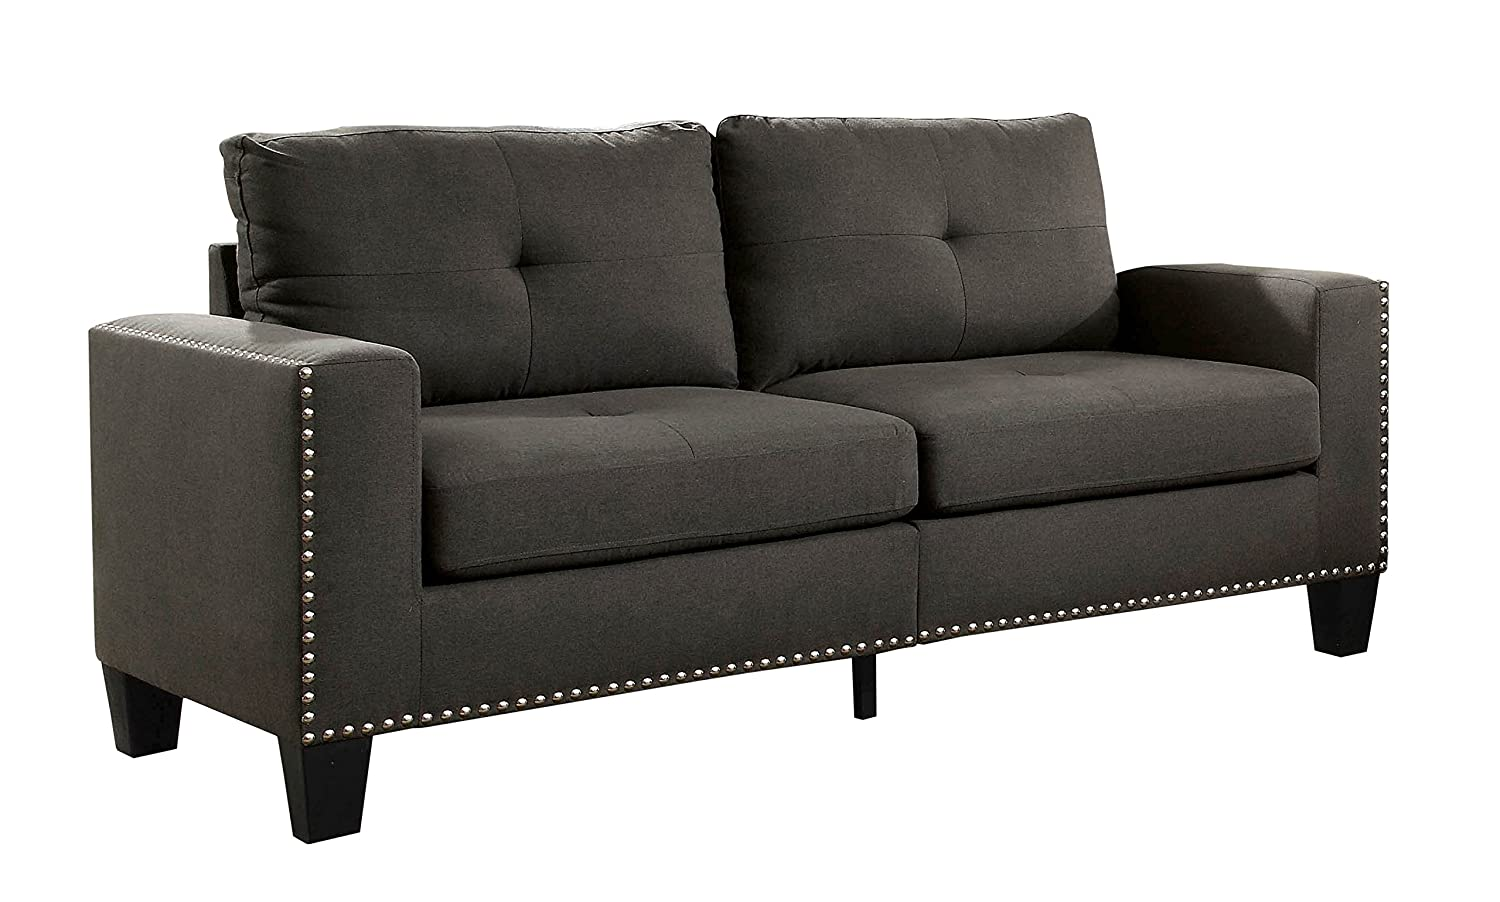 HOMES: Inside + Out IDF-6594-SF Behling Sofa, Grey